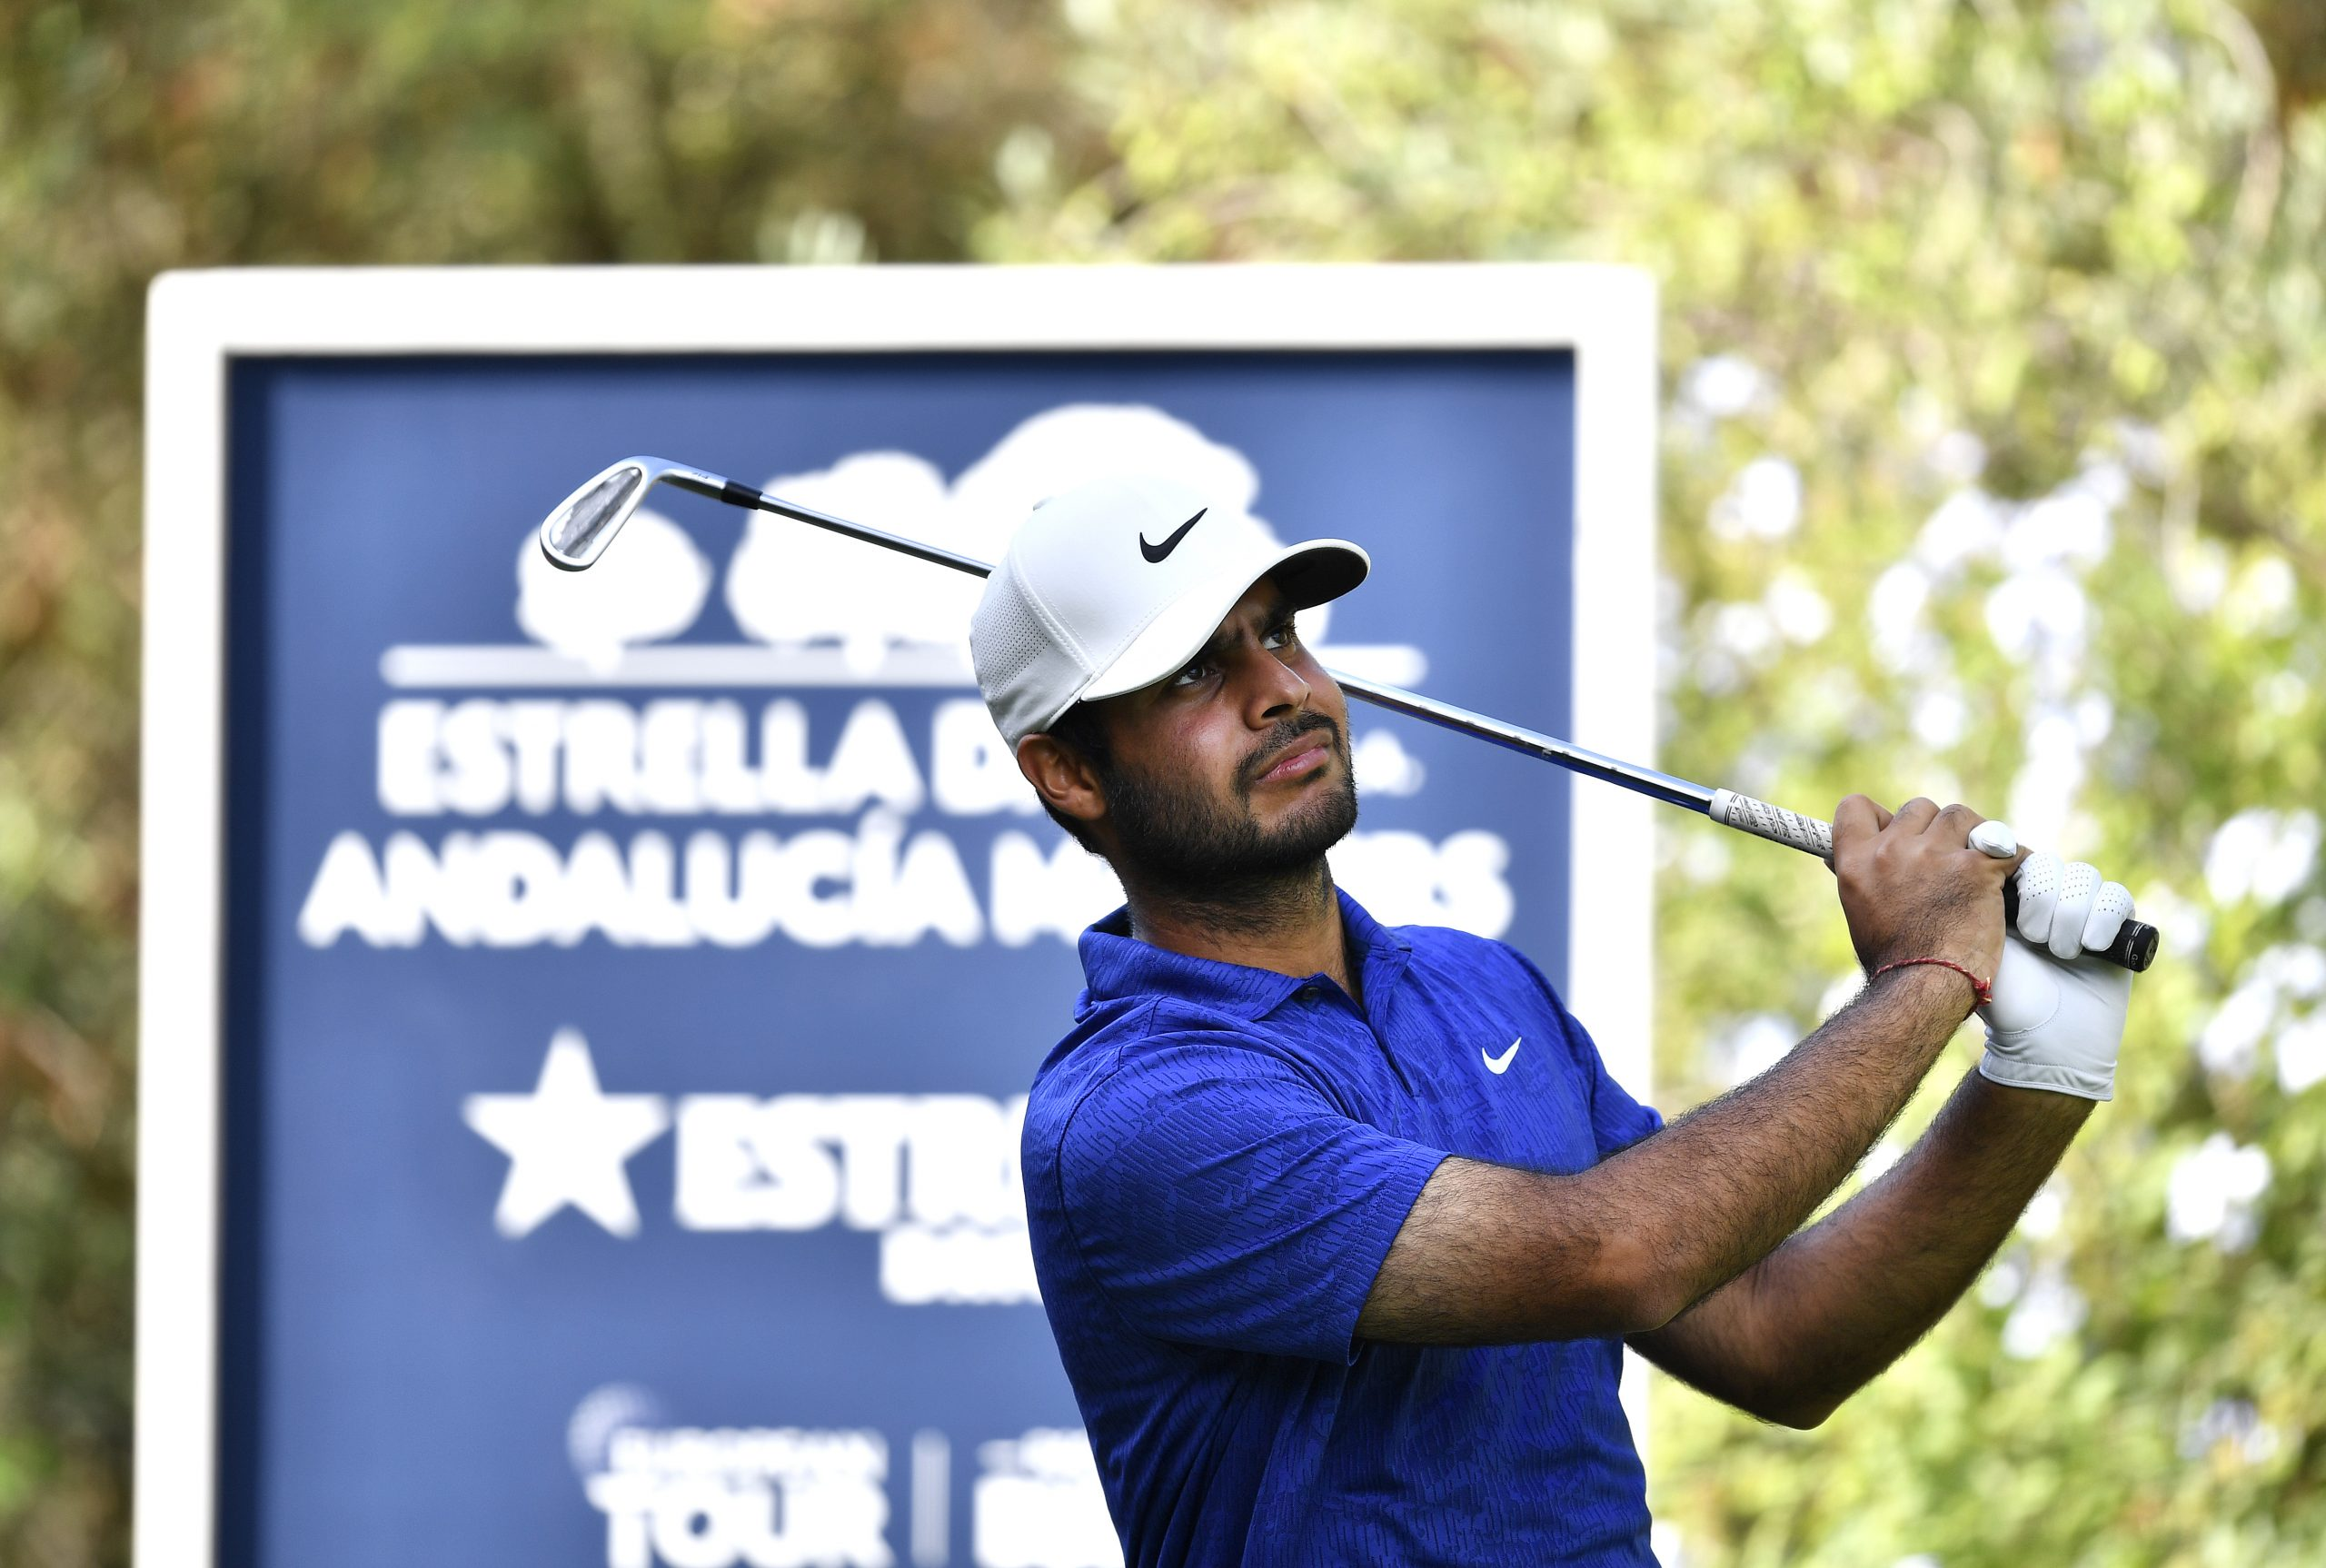 SOTOGRANDE, SPAIN - SEPTEMBER 03:  Shubhankar Sharma of India tees off on the third hole during the first round of the Estrella Damm N.A. Andalucia Masters at Real Club Valderrama on September 03, 2020 in Sotogrande, Spain. (Photo by Octavio Passos/Getty Images)